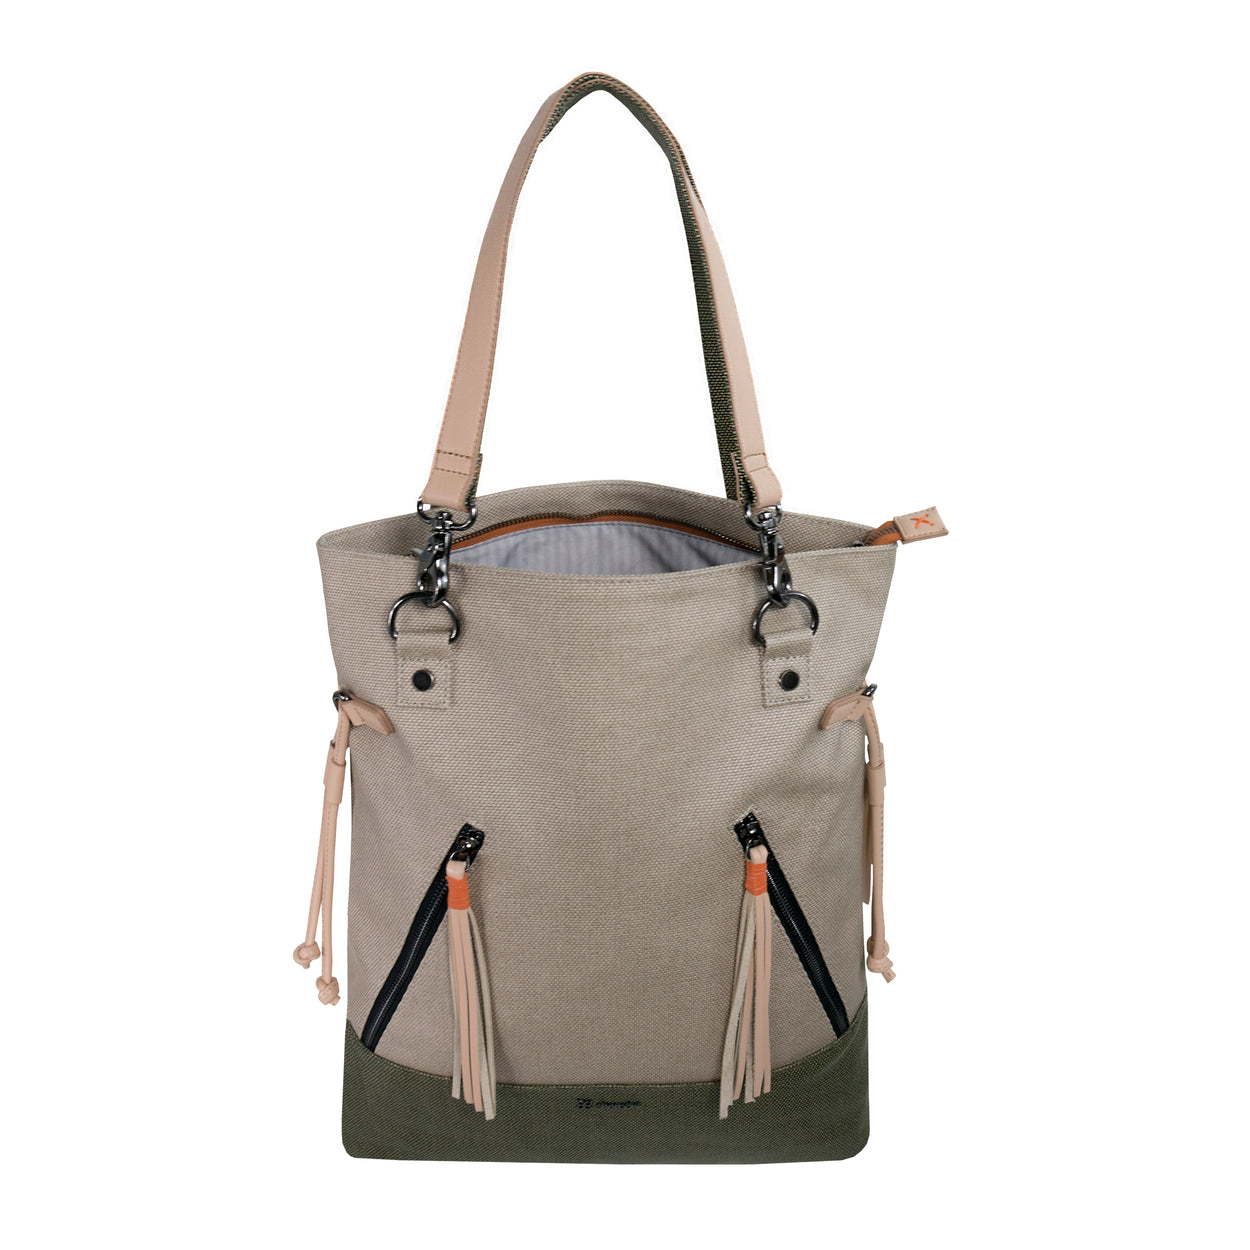 Sherpani- Lifestyle and Travel Bags Designed for Women 0e13871e9d22a